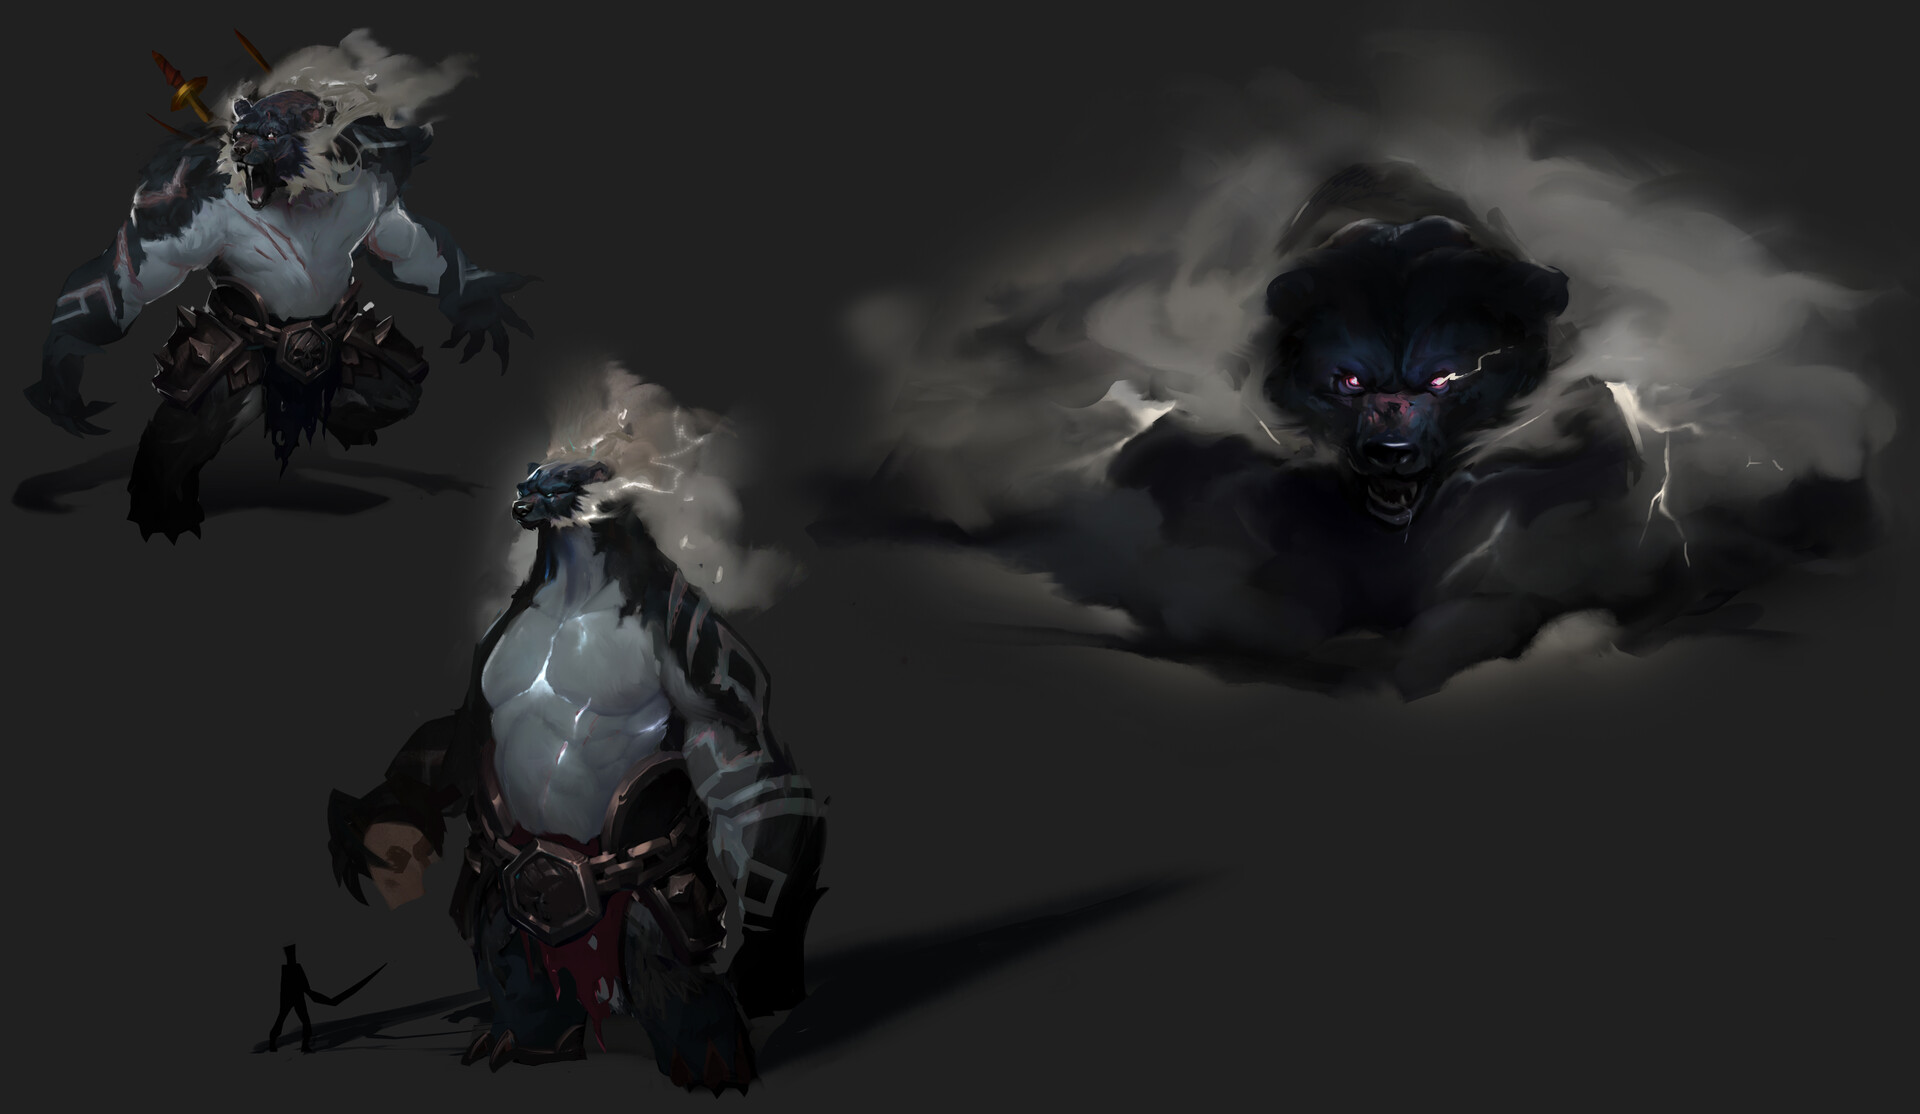 Explorations for body types and cloud/storm around him.